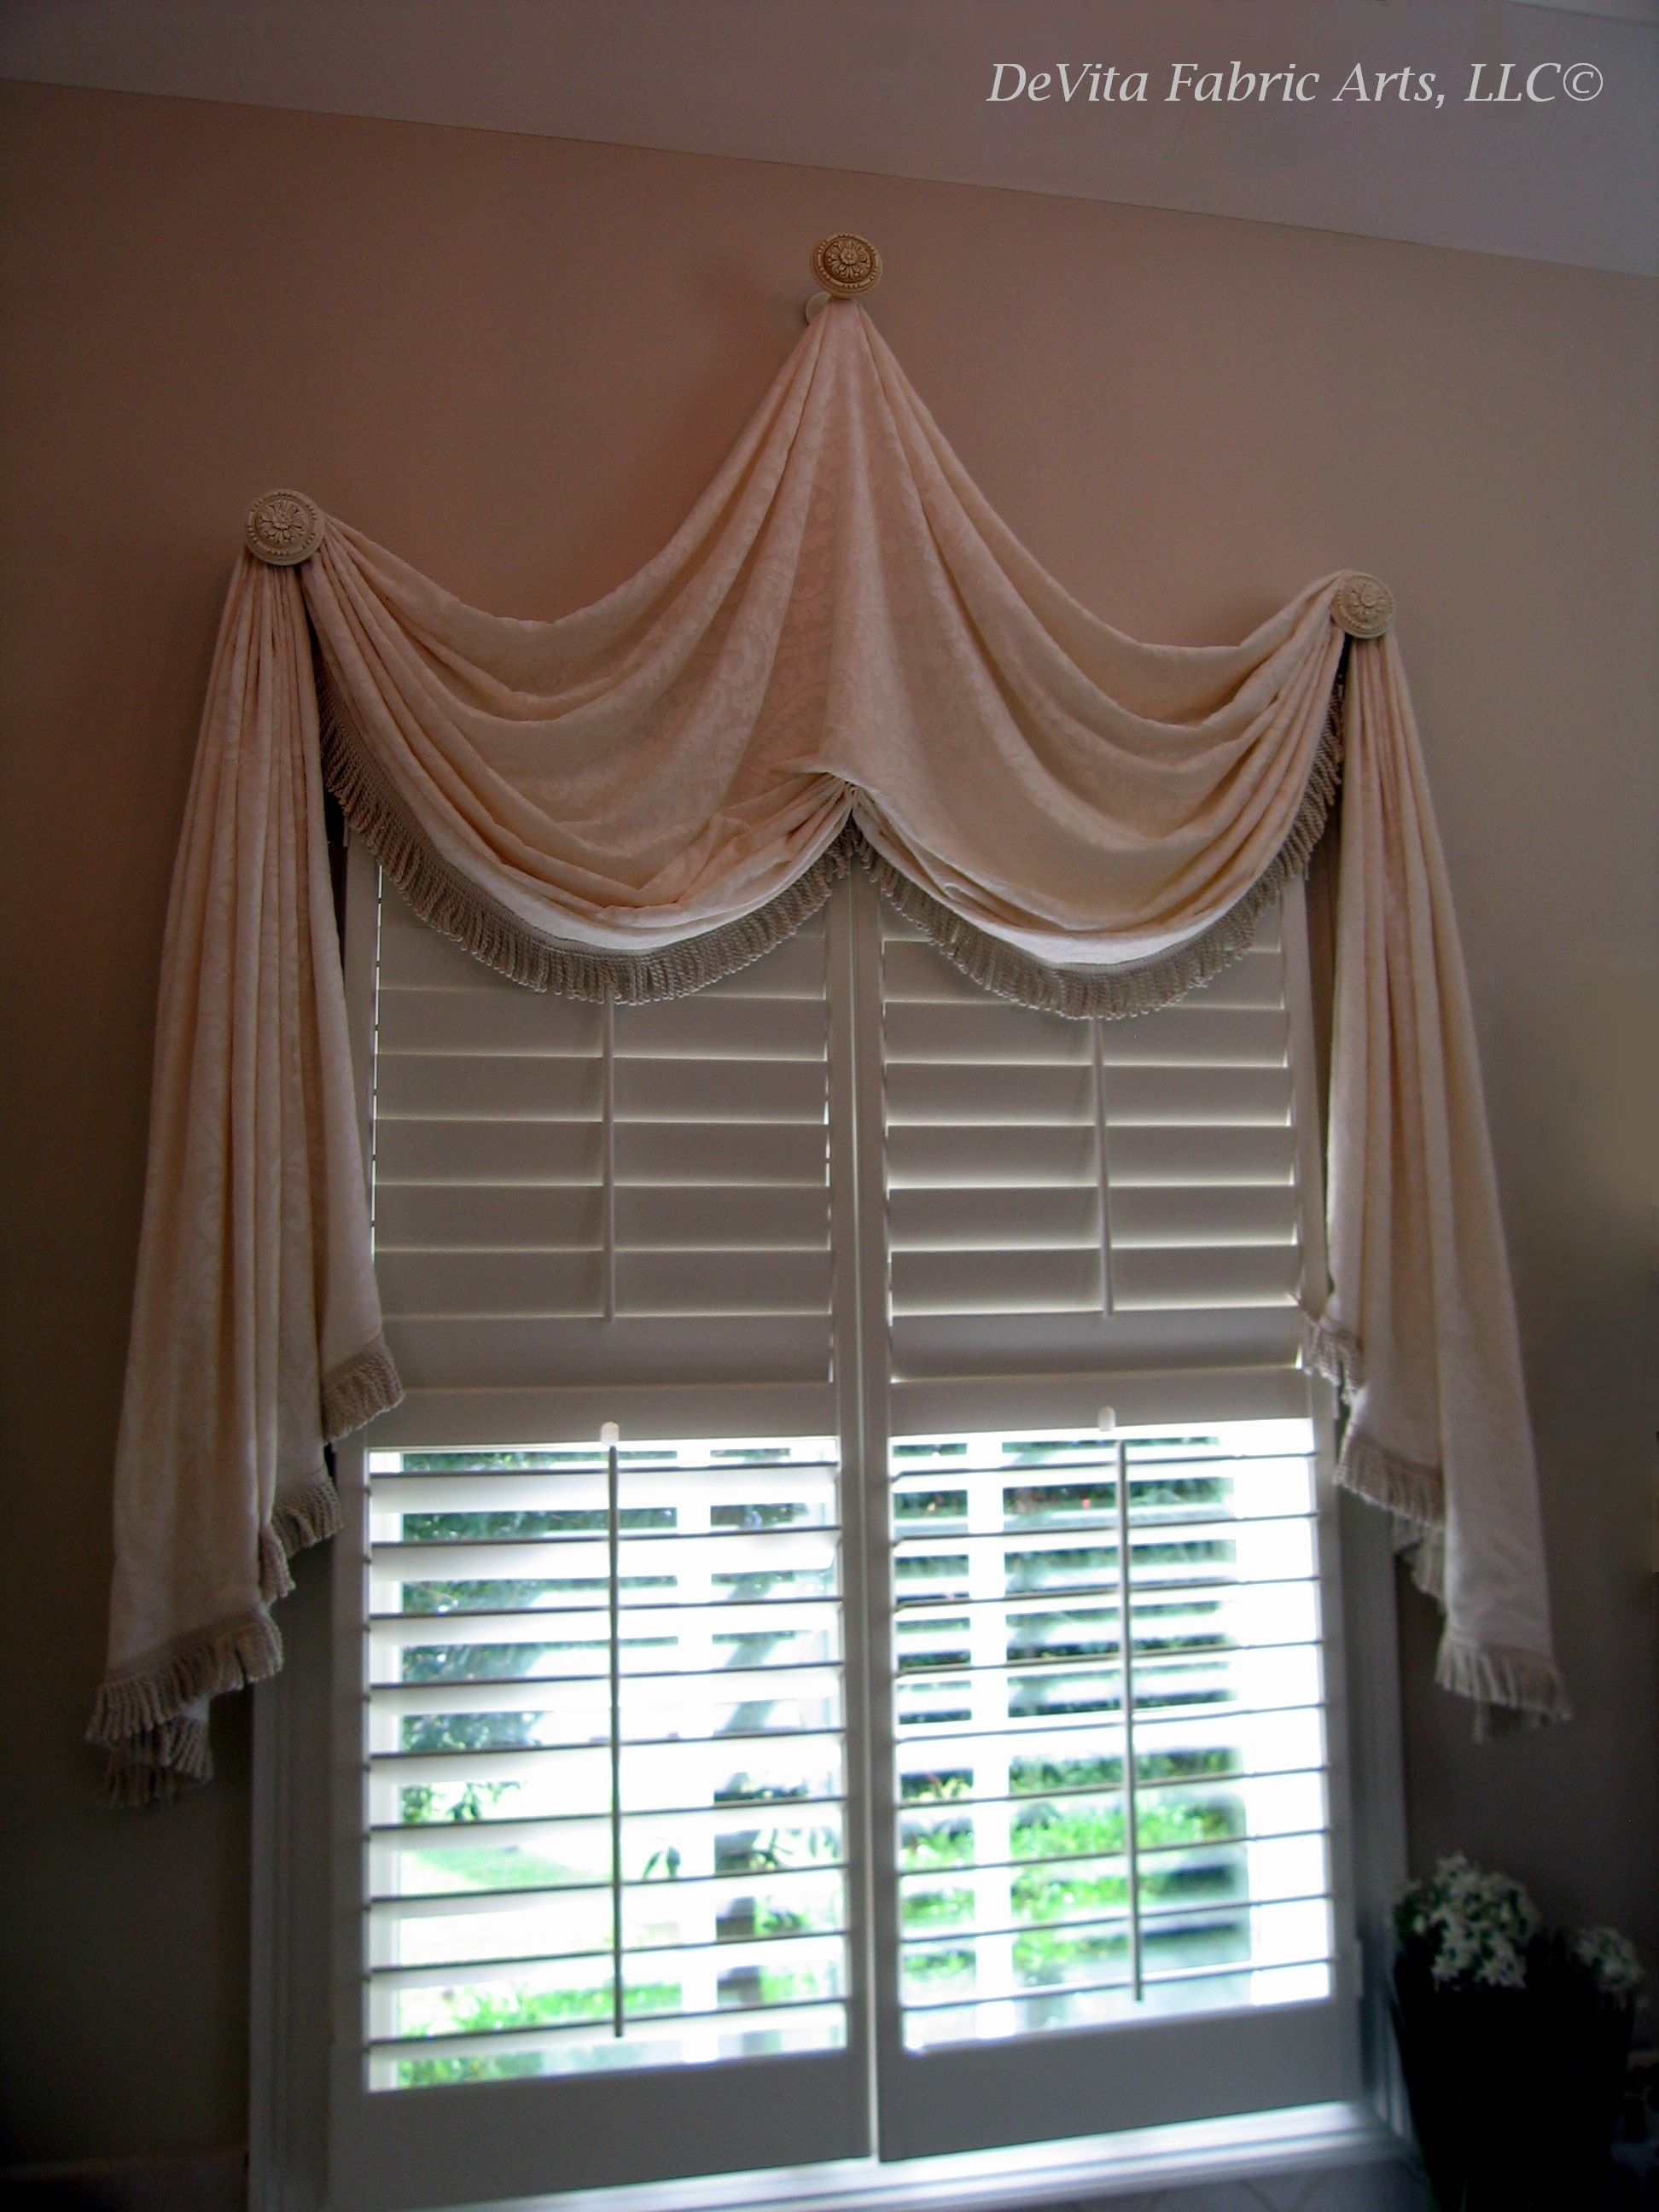 wind seashore walmart burlap swag valances windows curtains valance save on purple integralbookcom for turquoise nautical galery erieairfair how to window or scarf